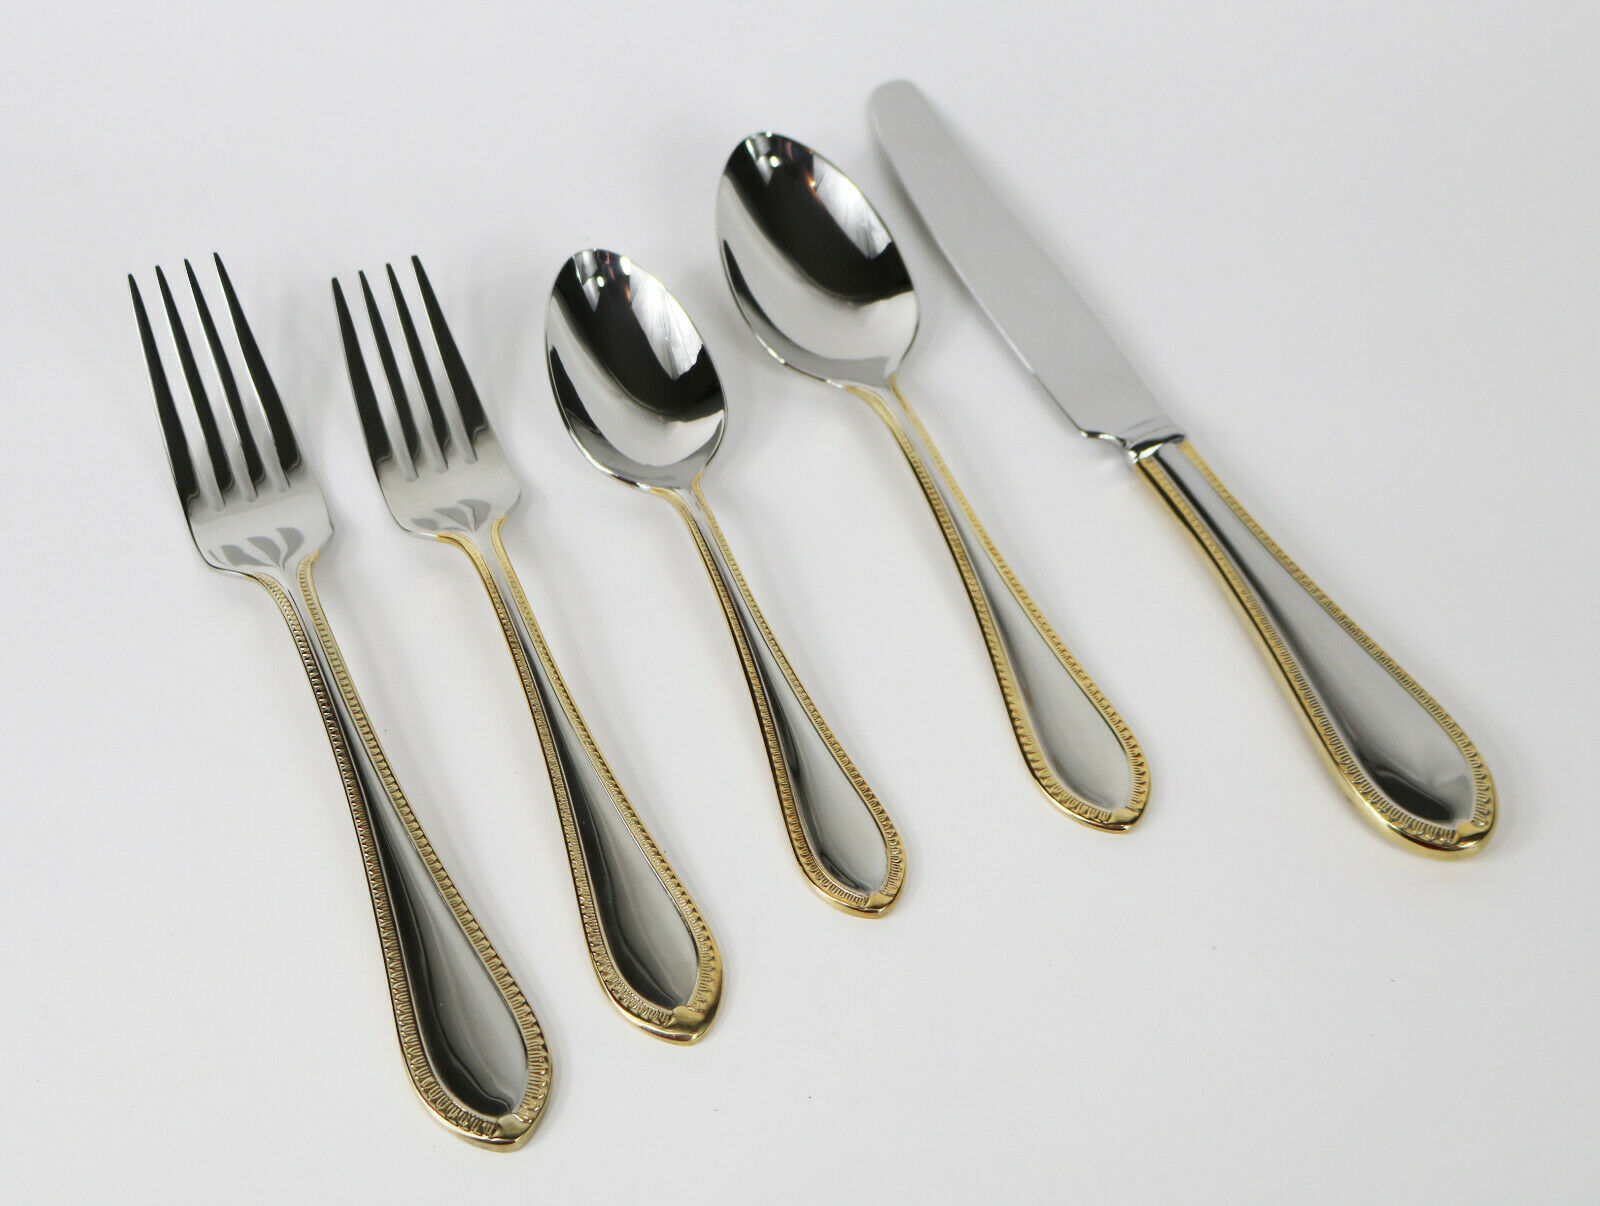 45pcs Waterford Northbridge Stainless Steel Gold Accent Flatware Set 8 8 8 + Serving 171fd6